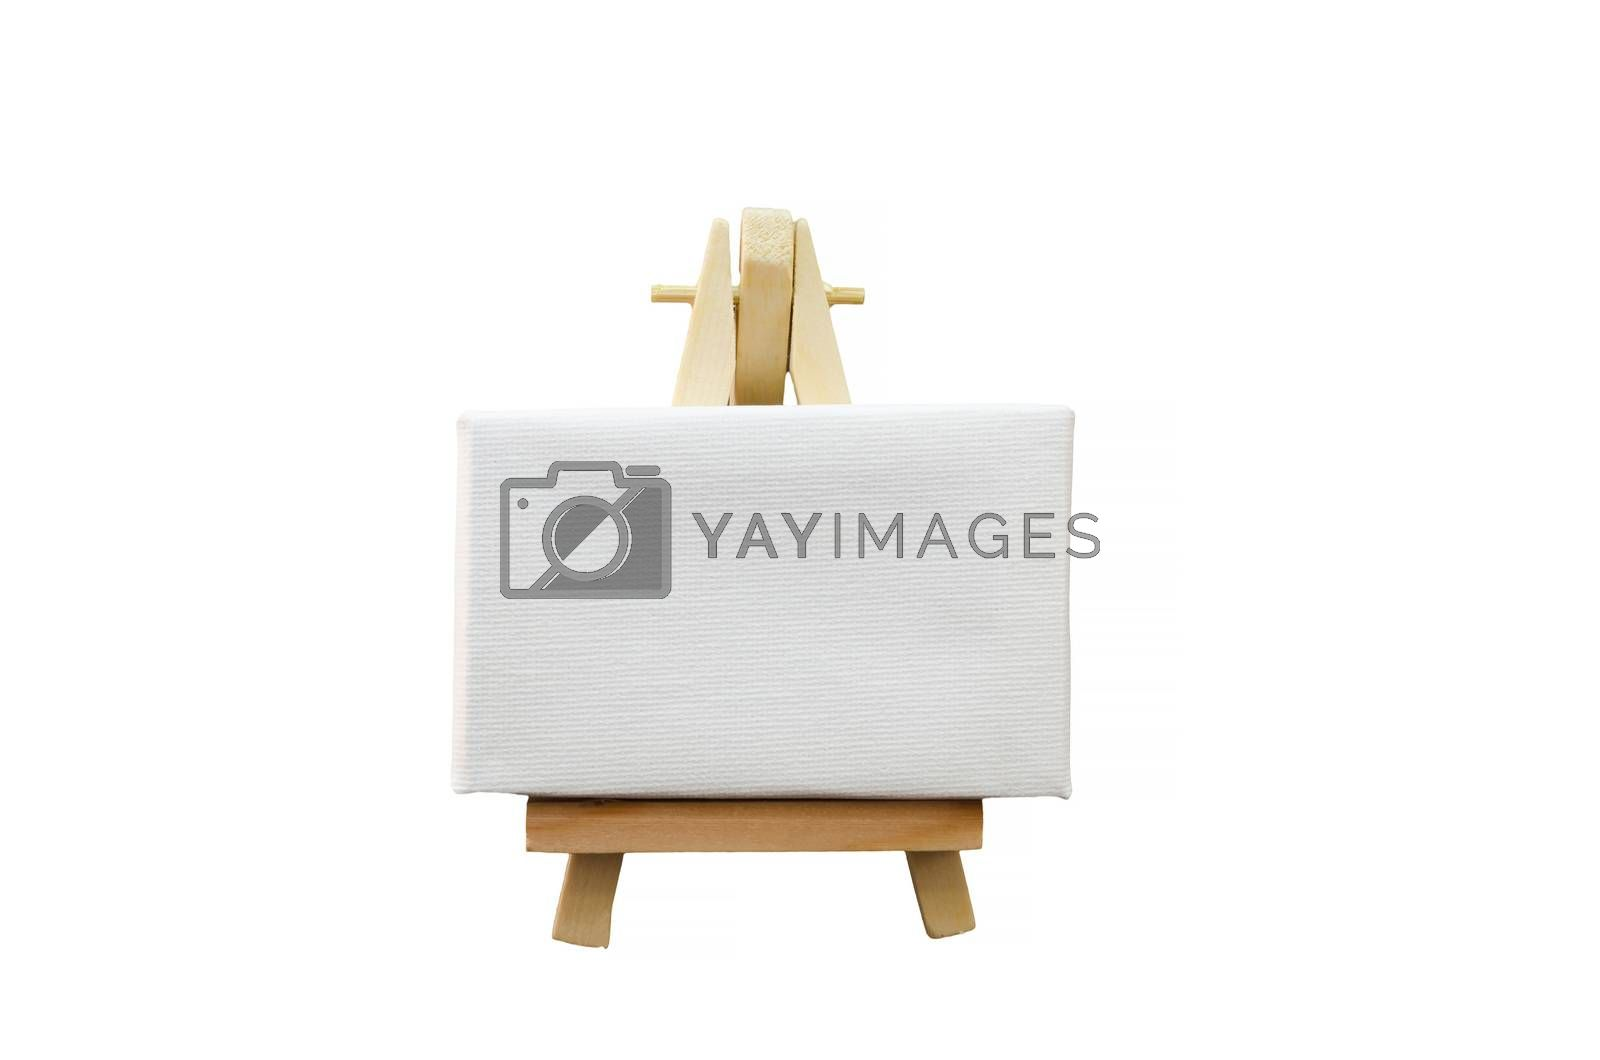 Miniature artist easel, isolated against a white background.